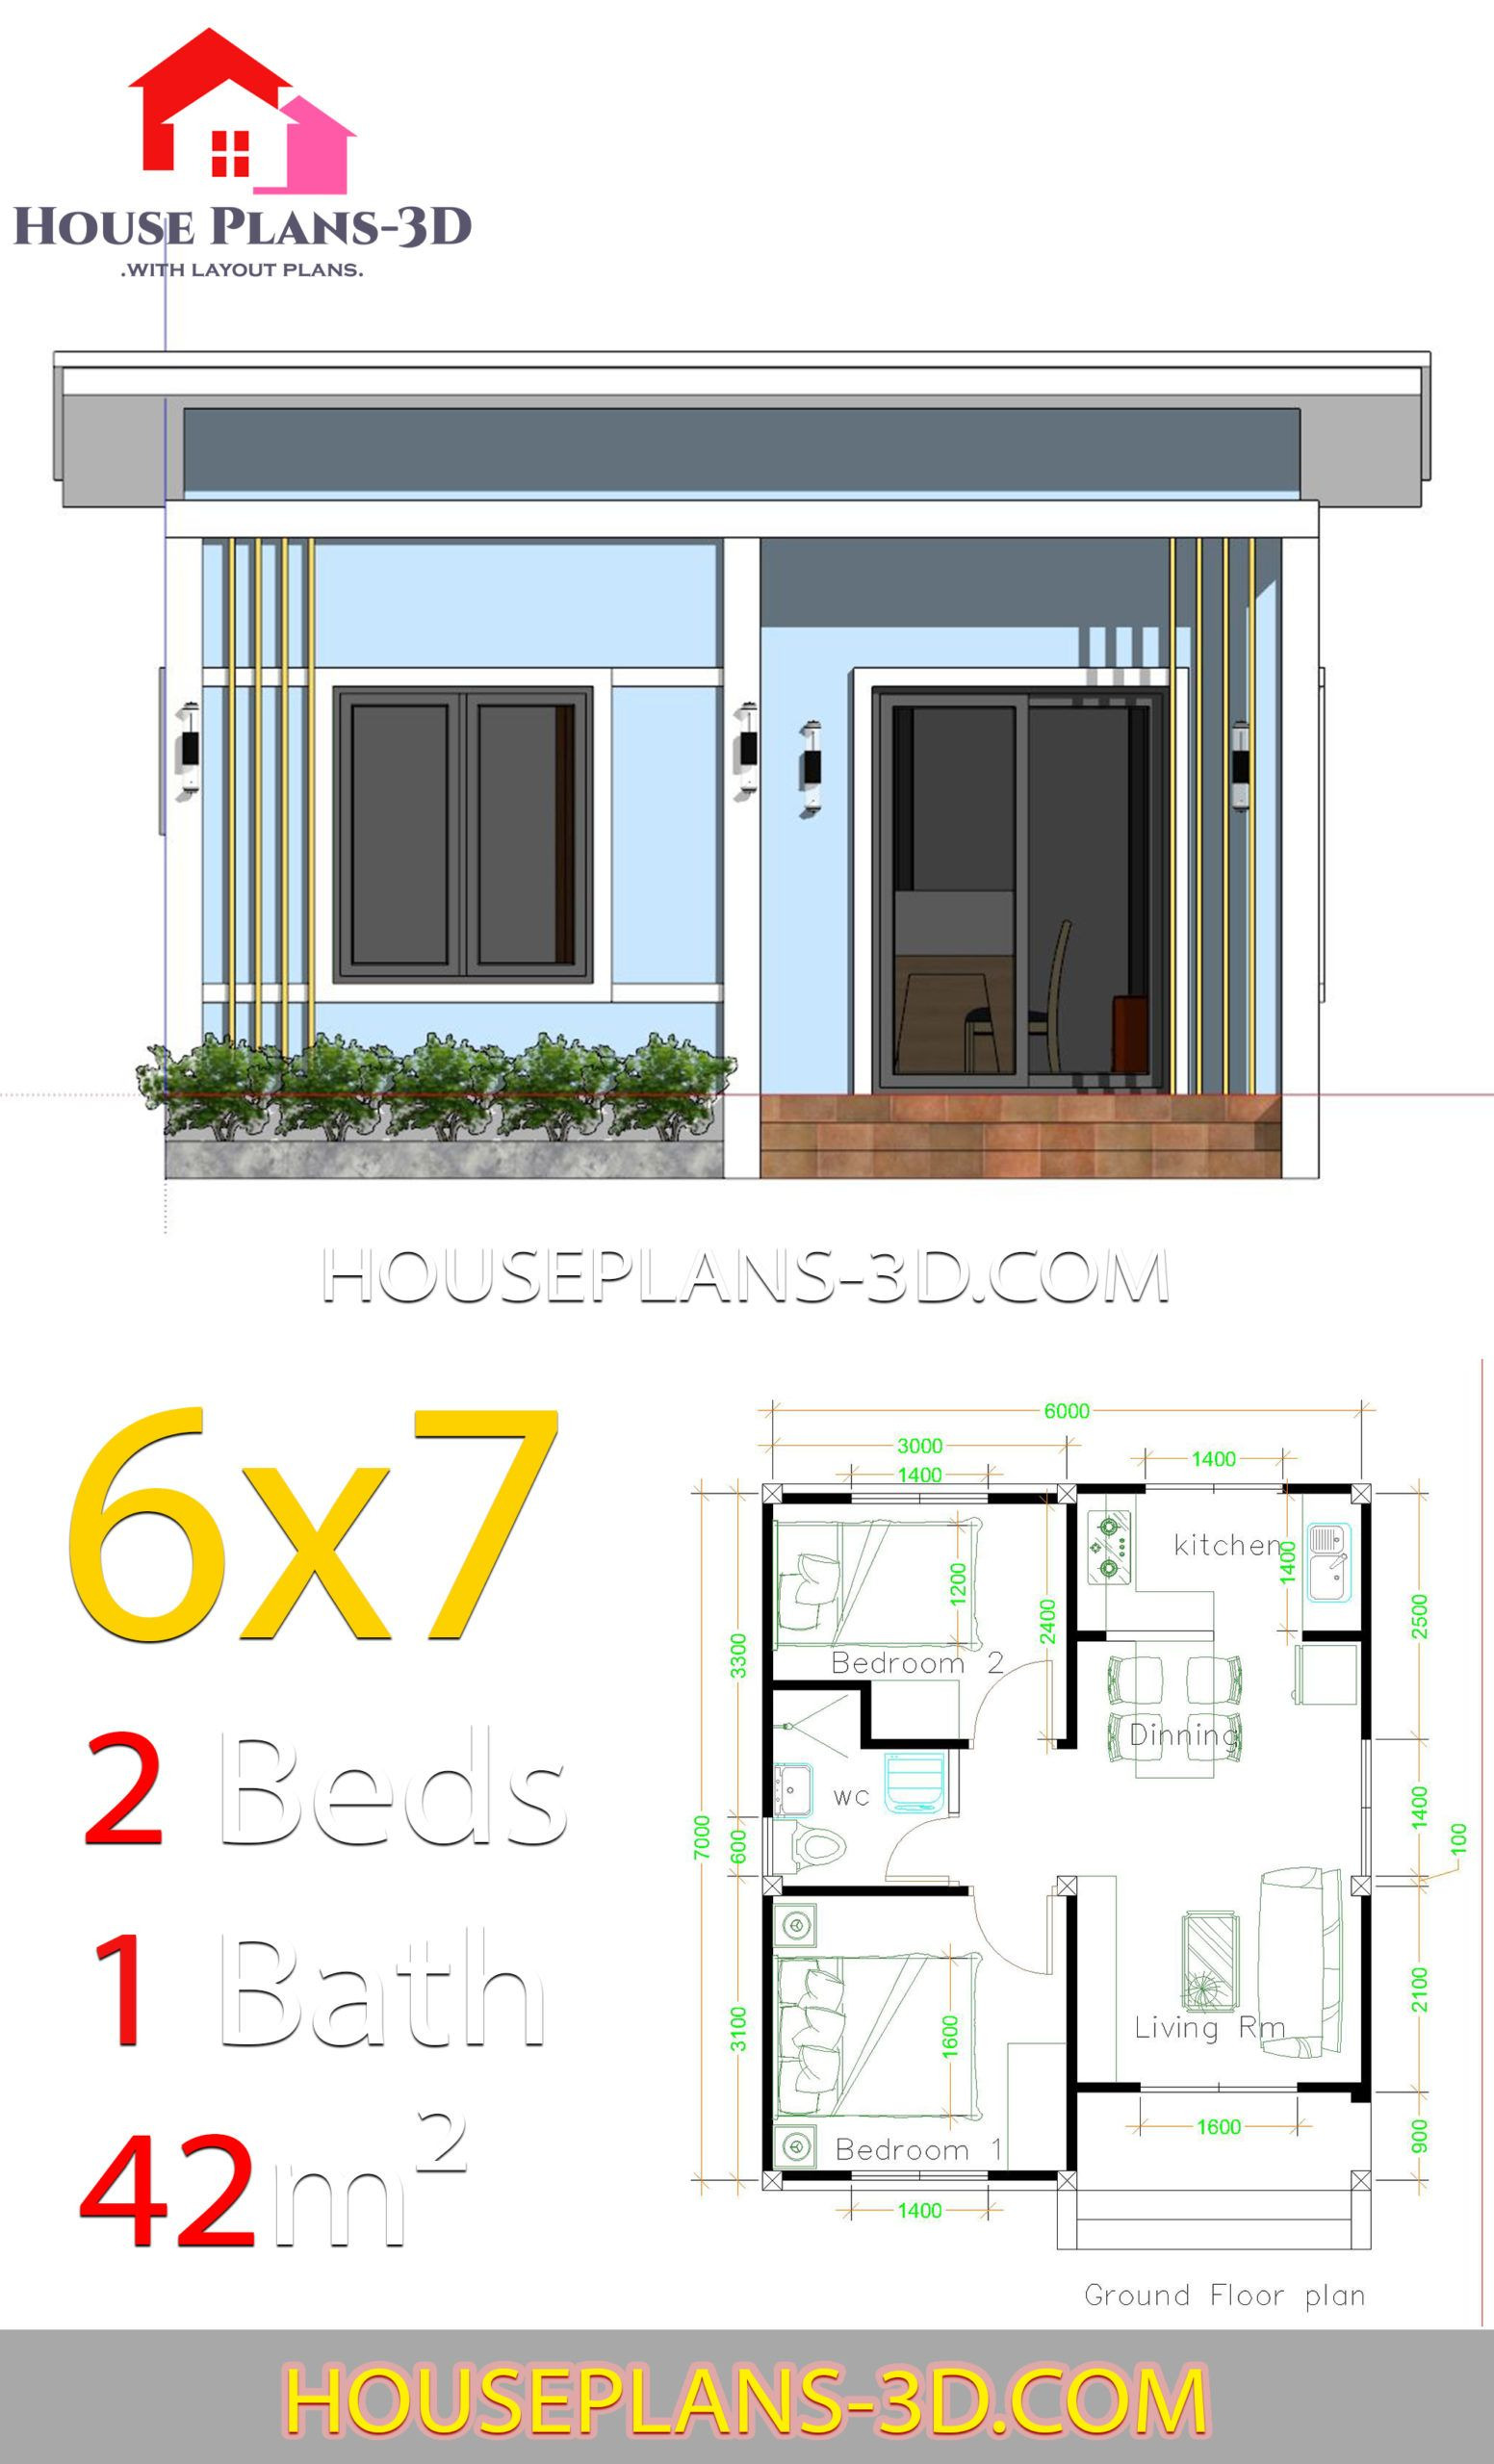 Simple House Plans Free Unique Simple House Plans 6x7 with 2 Bedrooms Shed Roof House